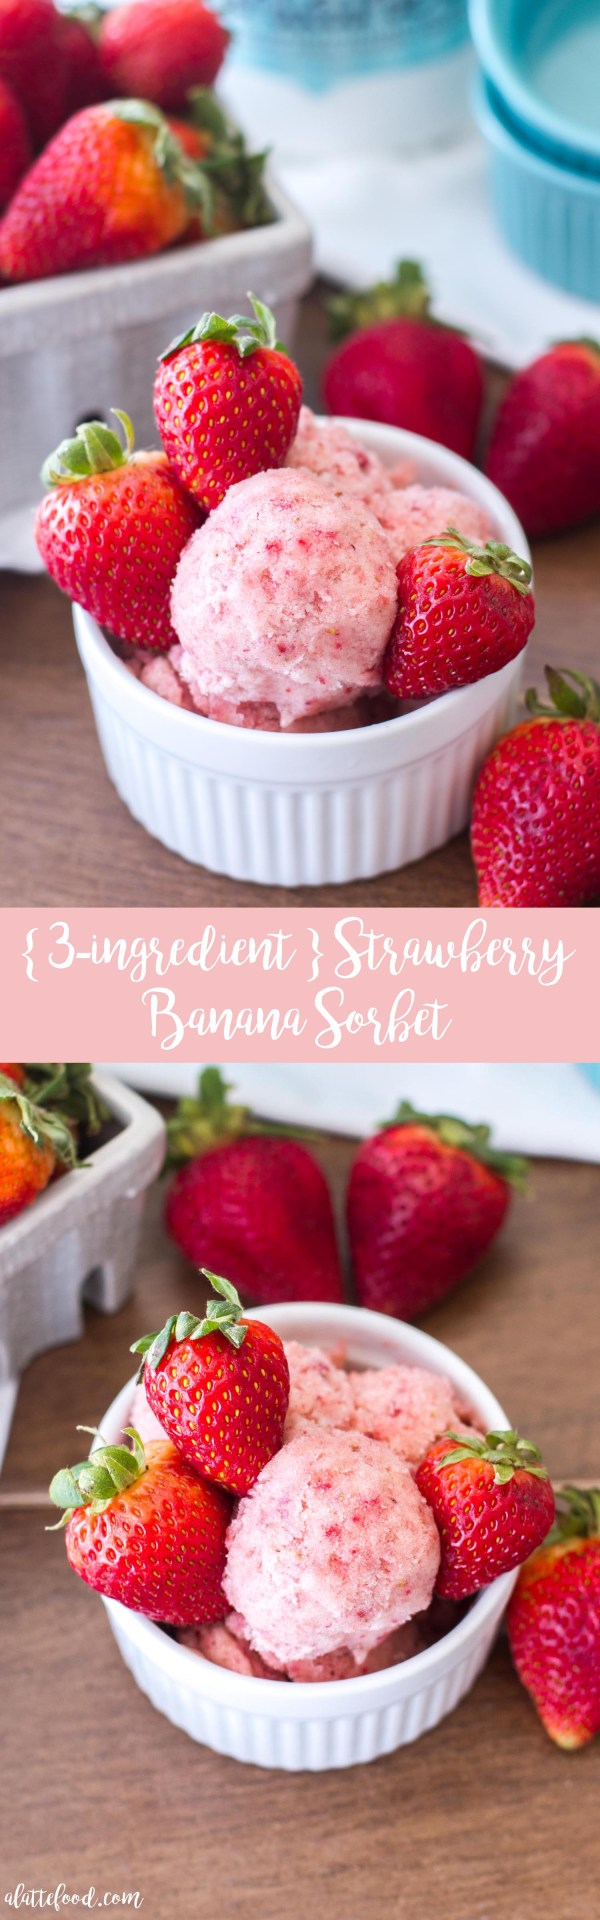 This easy sorbet recipe is made with only 3-ingredients: frozen bananas, frozen strawberries, and coconut milk! All that stands between you and this healthy sorbet recipe is a food processor!